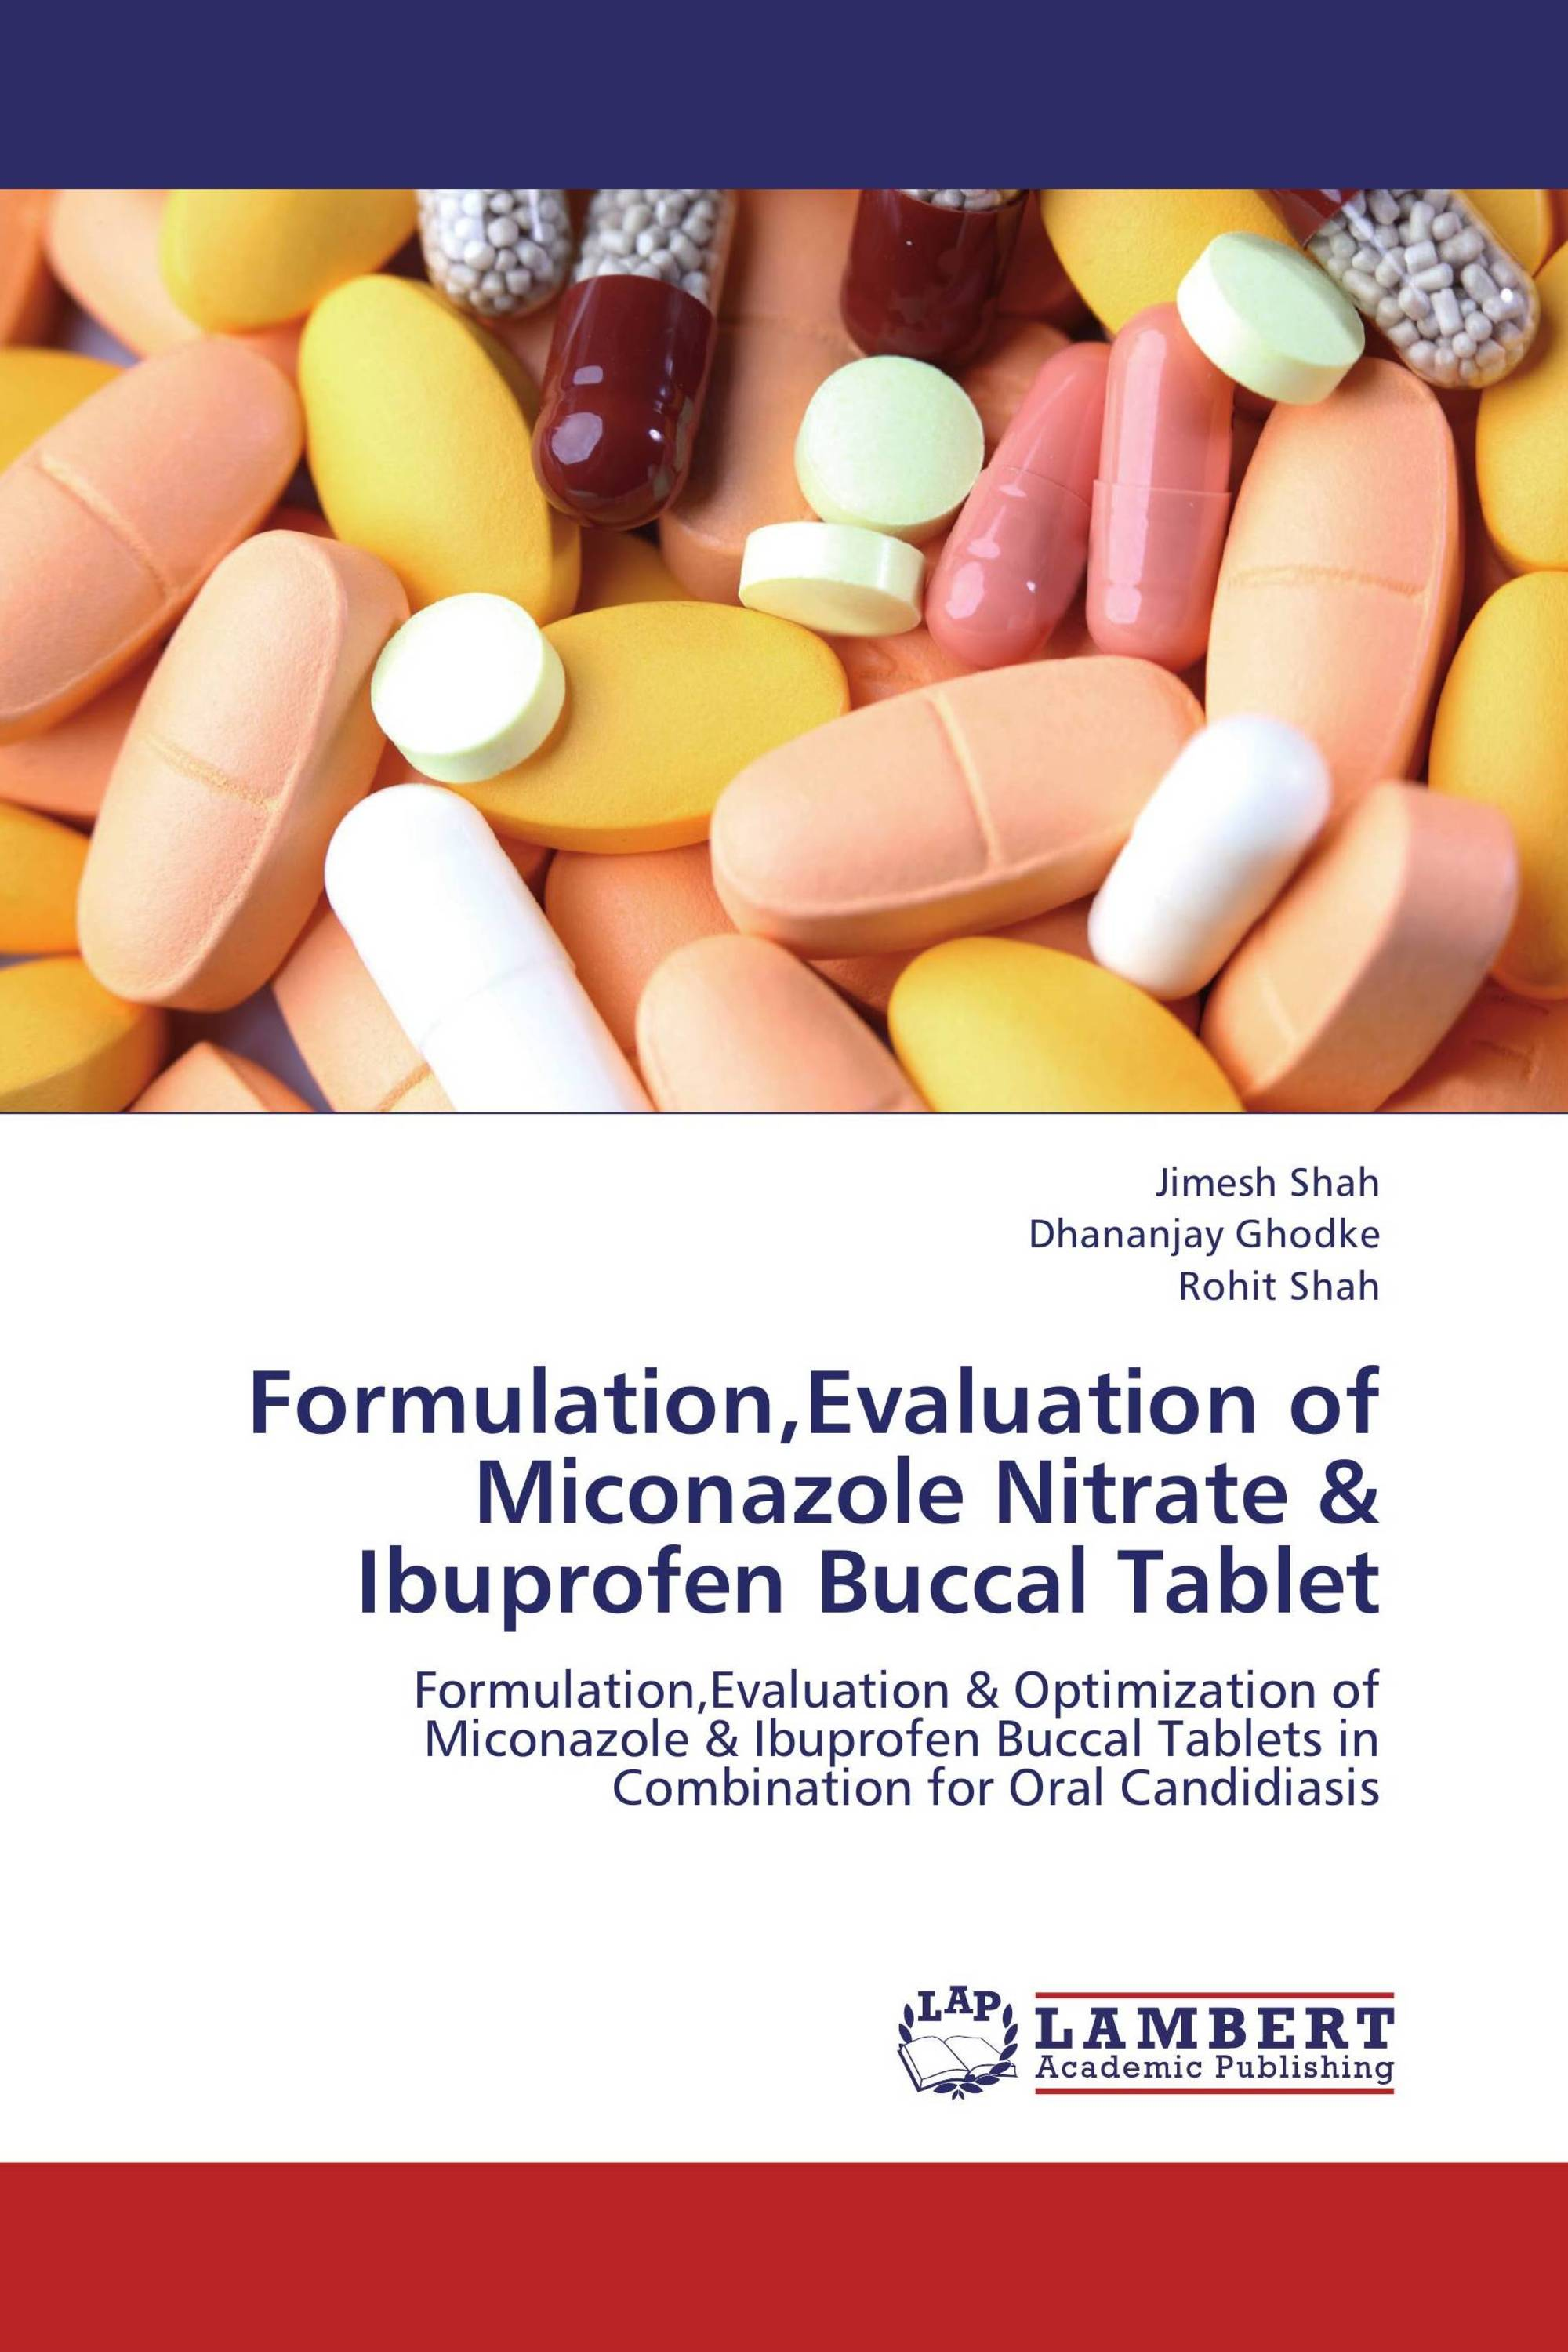 thesis on mucoadhesive buccal tablet Optimize the mucoadhesive hydrophilic compressed matrices of domperidone for  buccal  buccal bioadhesive hydrophilic matrix tablets ashwini r madgulkar.